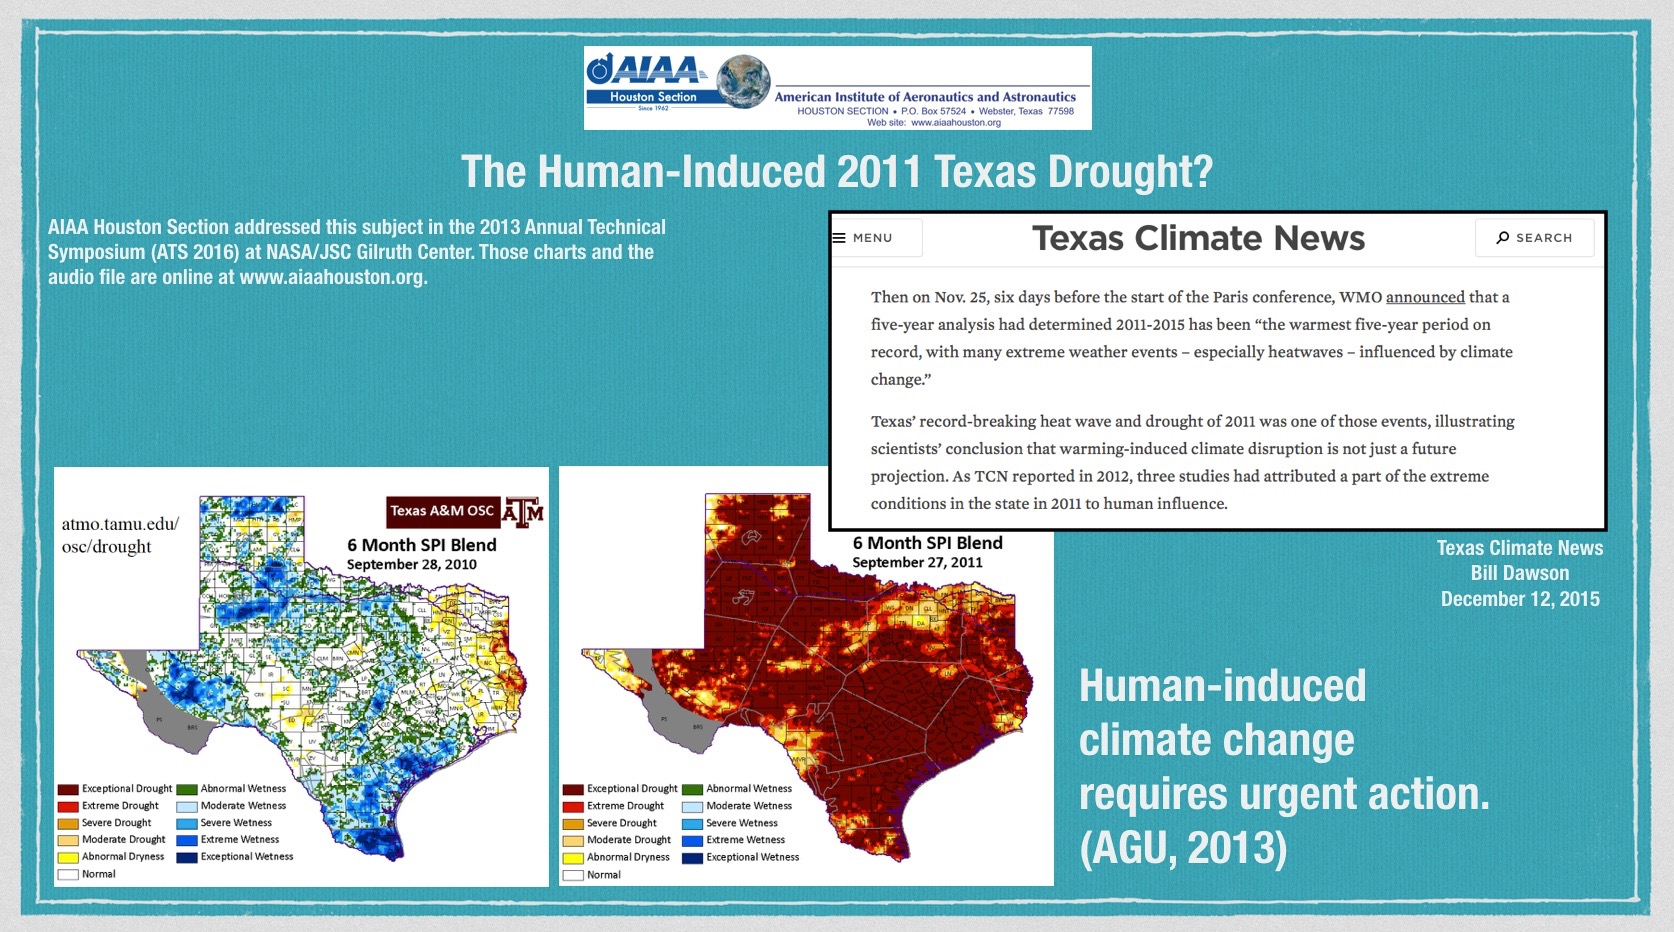 Above: News from December 12, 2015 about the 2011 Texas drought. (Click to zoom.)